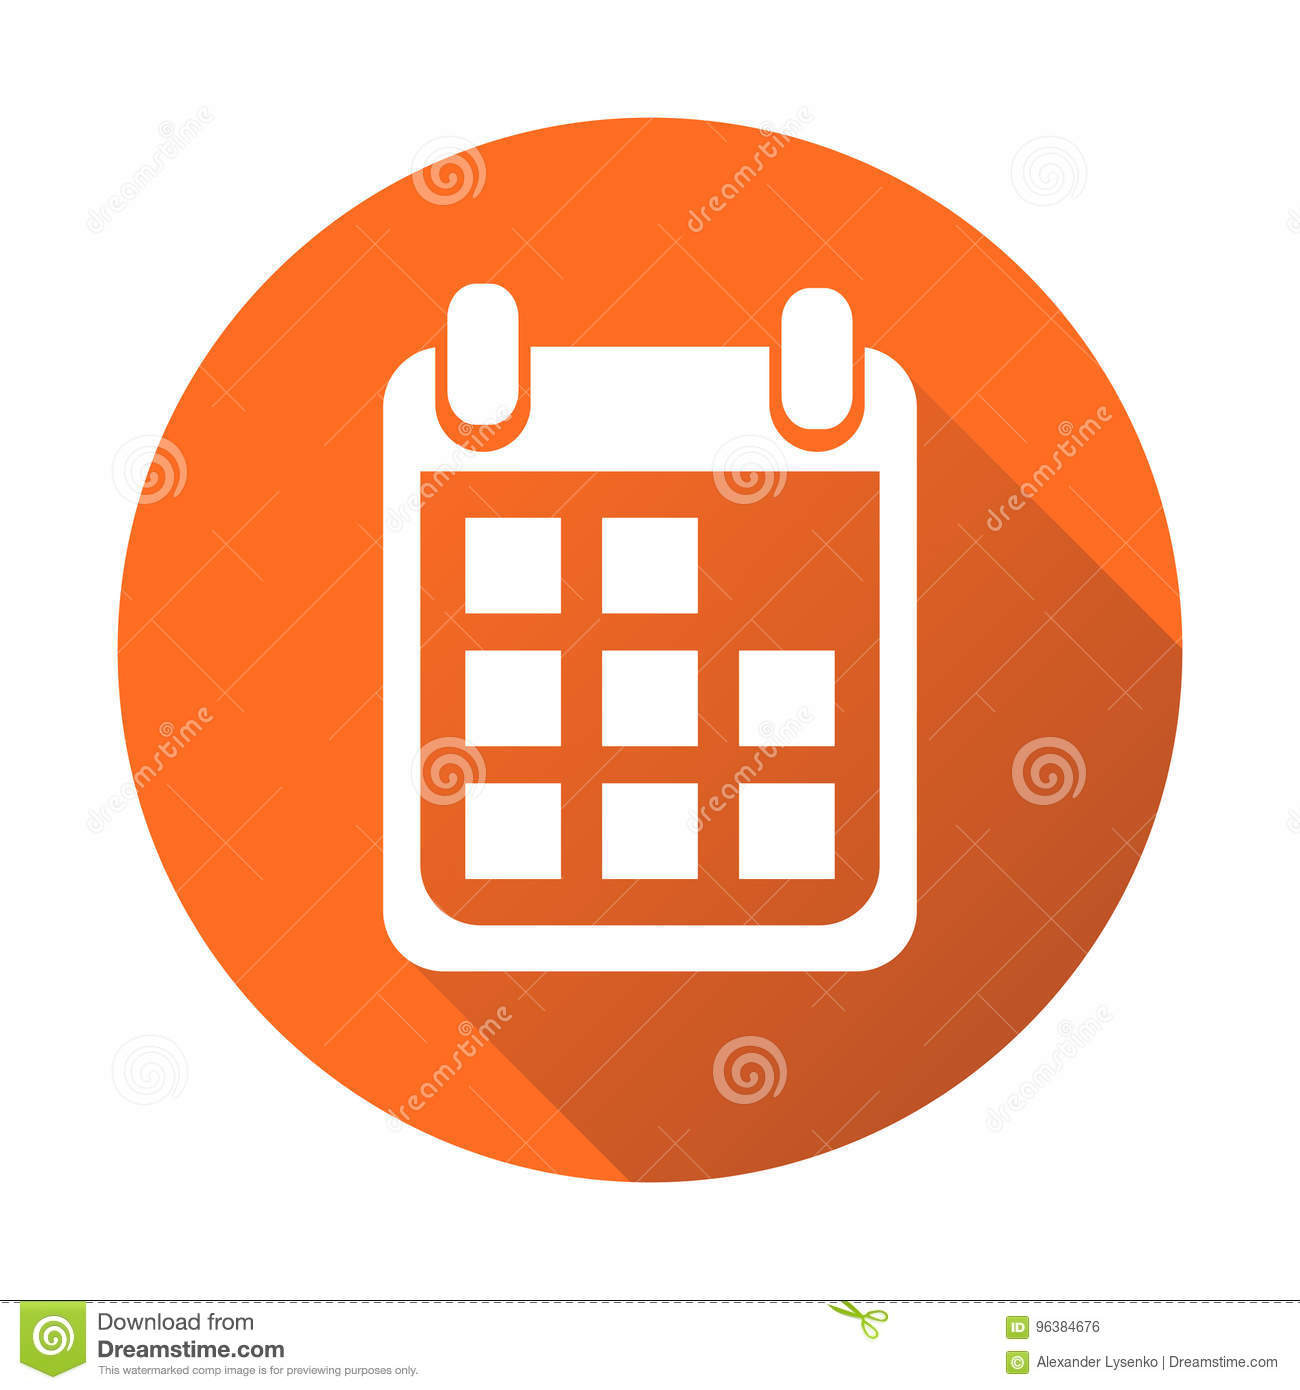 Calendar Icon On Orange Round Background, Vector intended for Round Calendar Icon